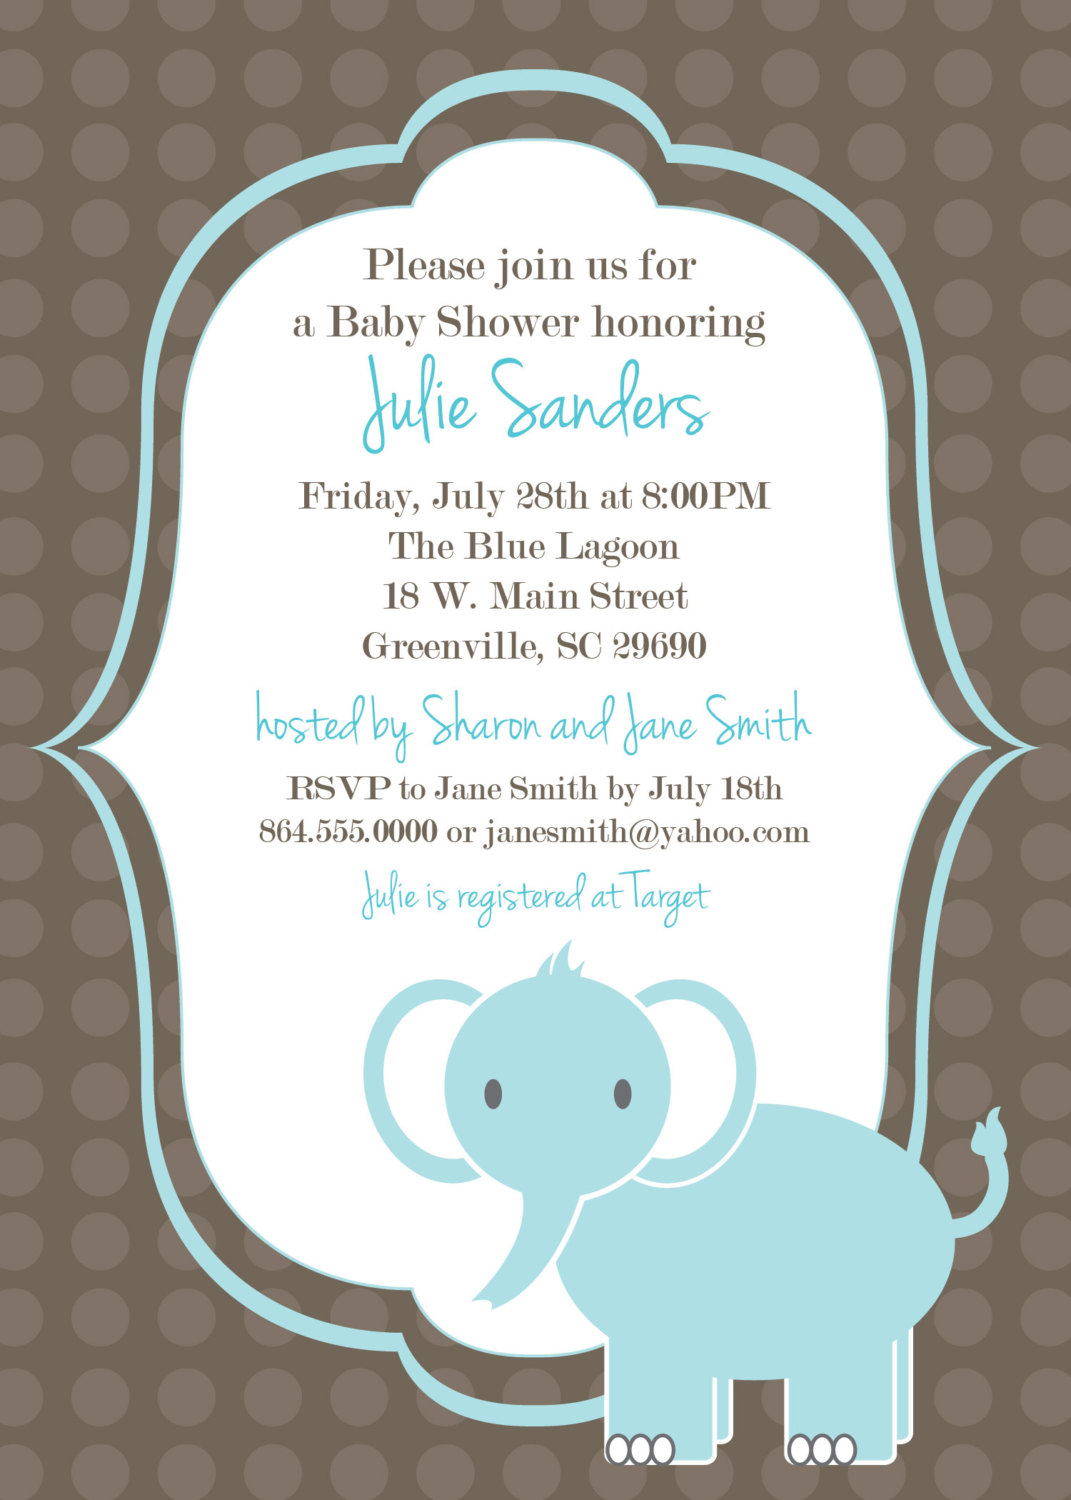 image relating to Printable Baby Shower Invites named Printable Kid Shower Invites, Elephant , Boy, Gentle Blue Customized, Fixed OF 10 versus OhCreativeOne, LLC